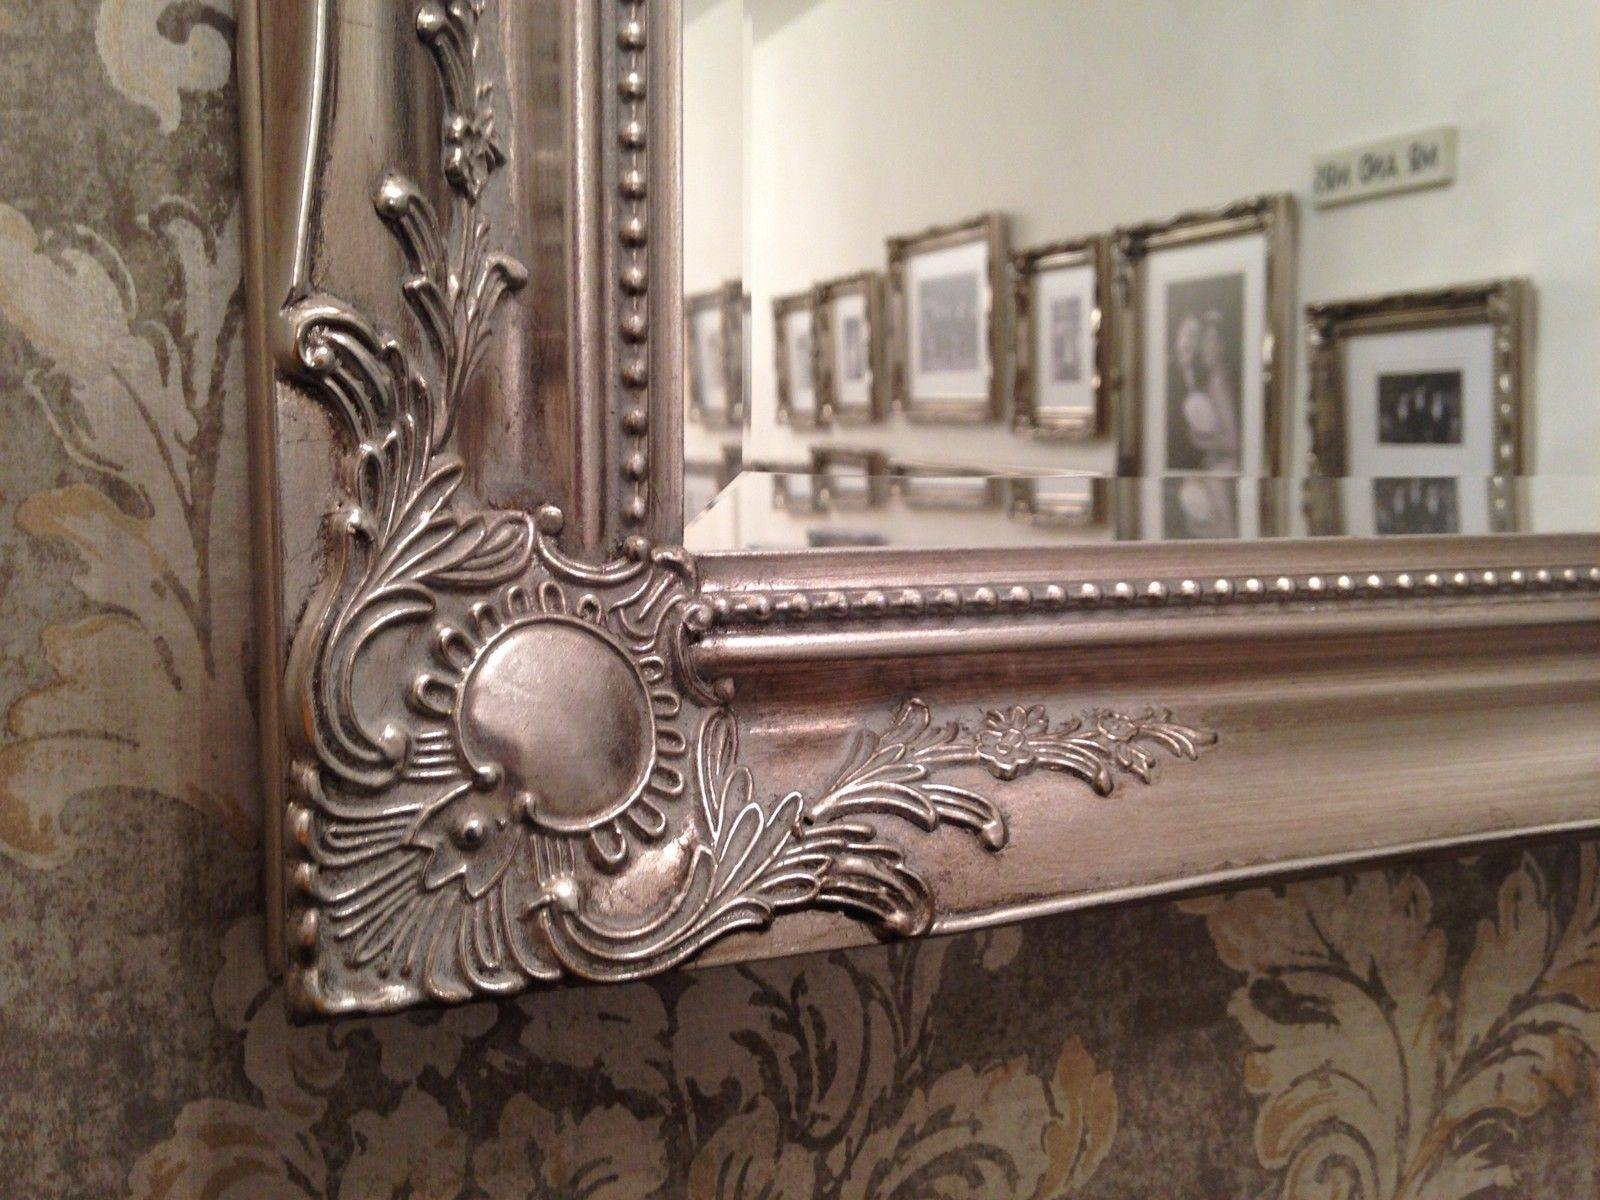 X Large Antique Silver Shabby Chic Ornate Decorative Wall Mirror within Large Antique Silver Mirrors (Image 15 of 15)